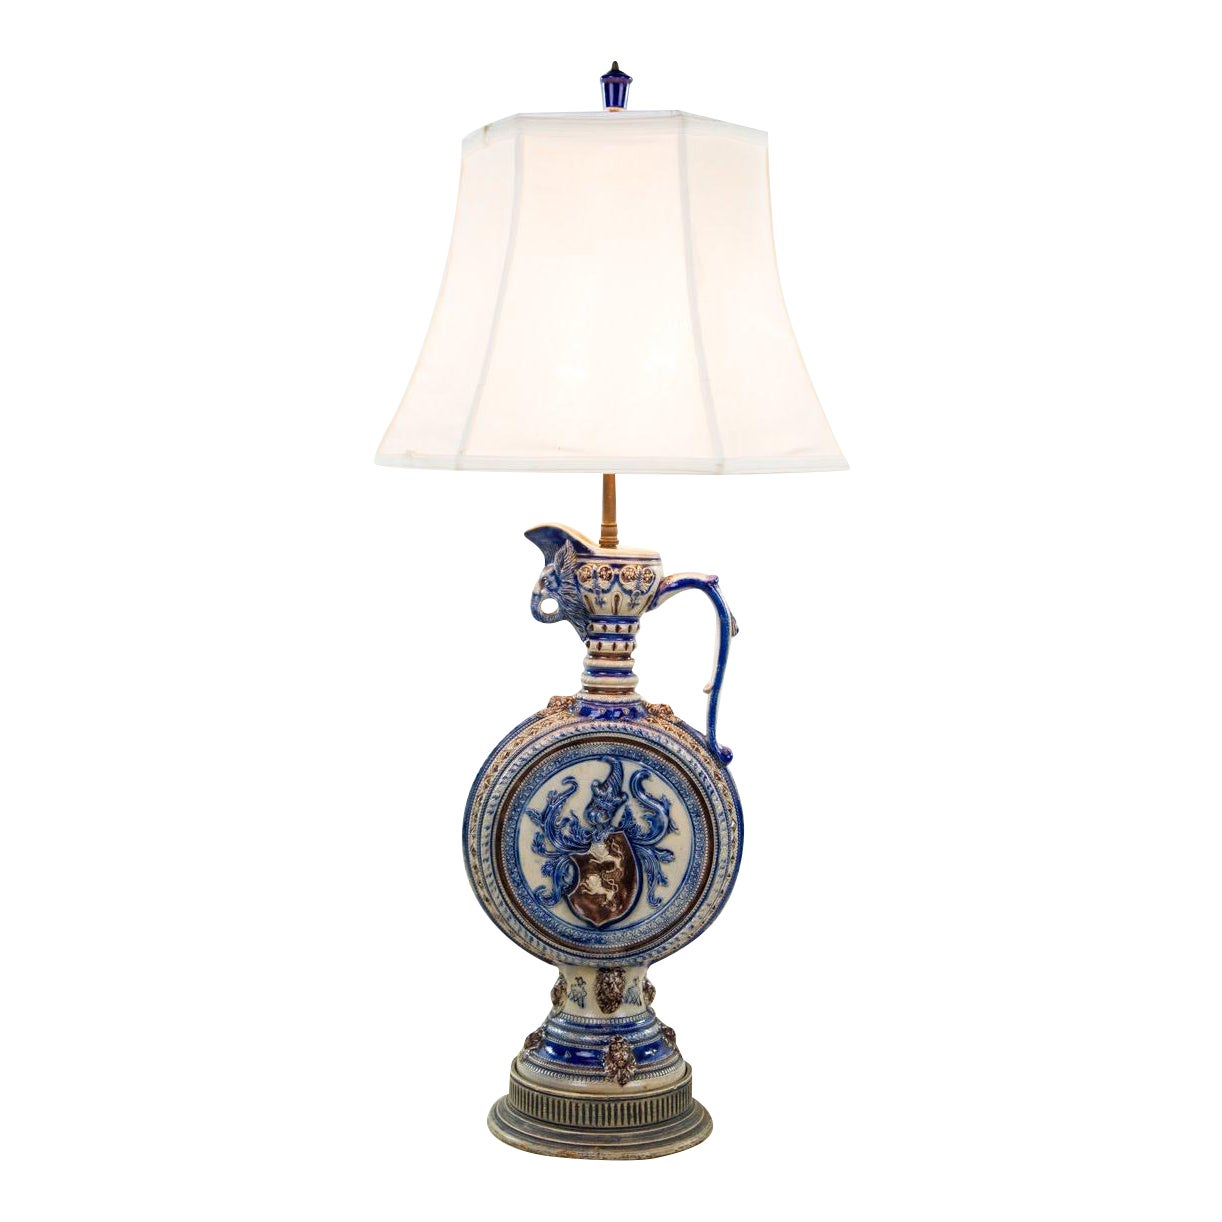 1920s Neoclassical Italian Porcelain Pitcher Double Light Table Lamp